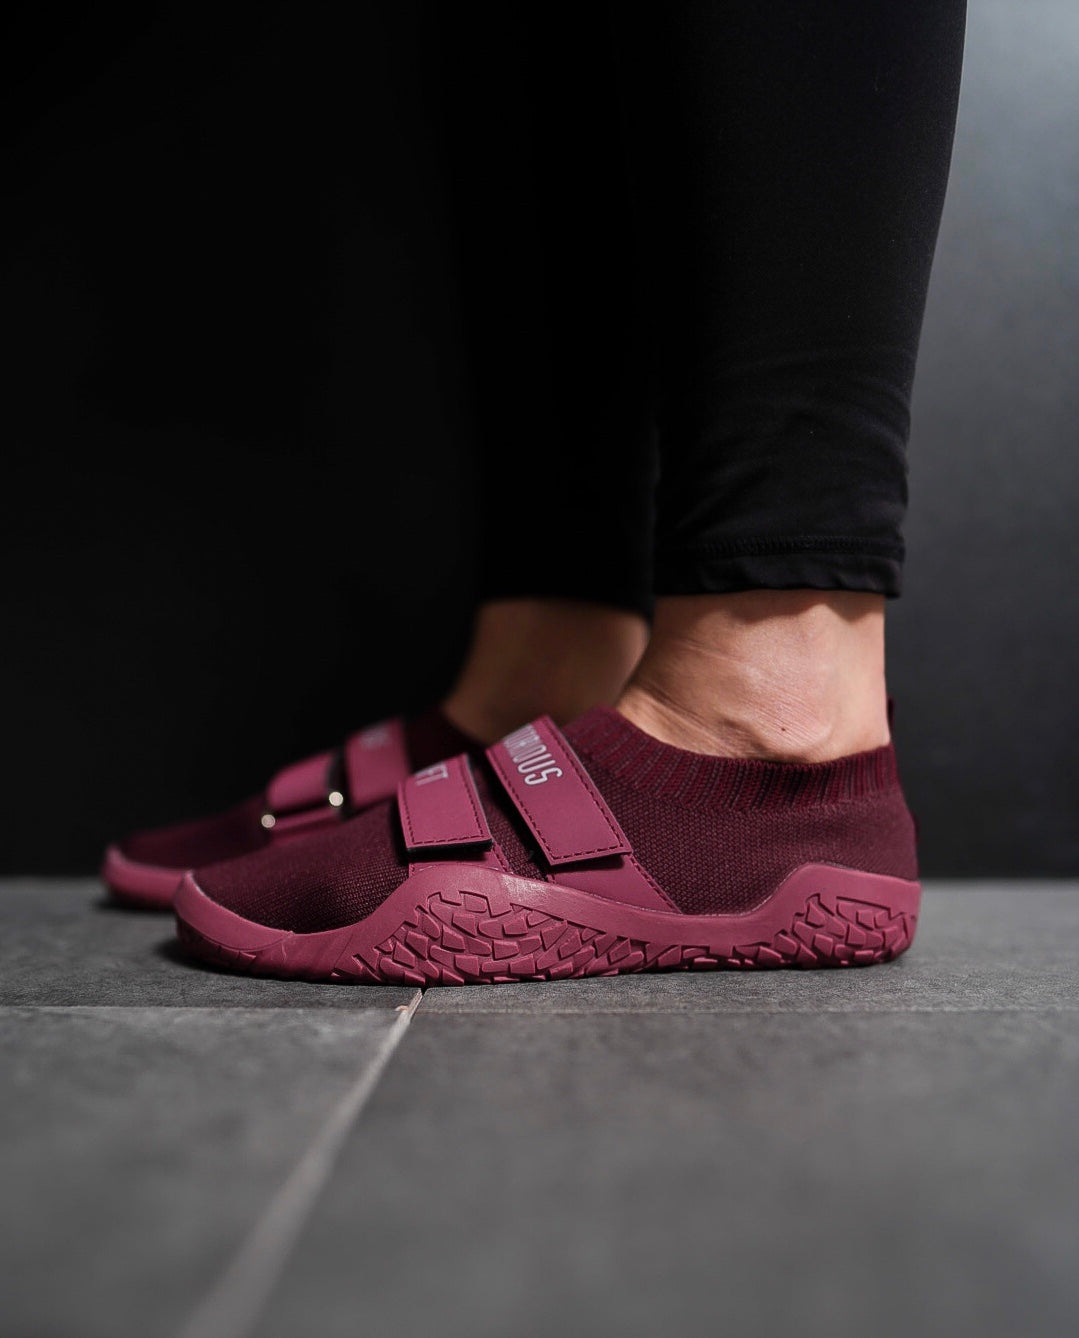 SUMO SOLE SLIPPERS: MAROON EDITION